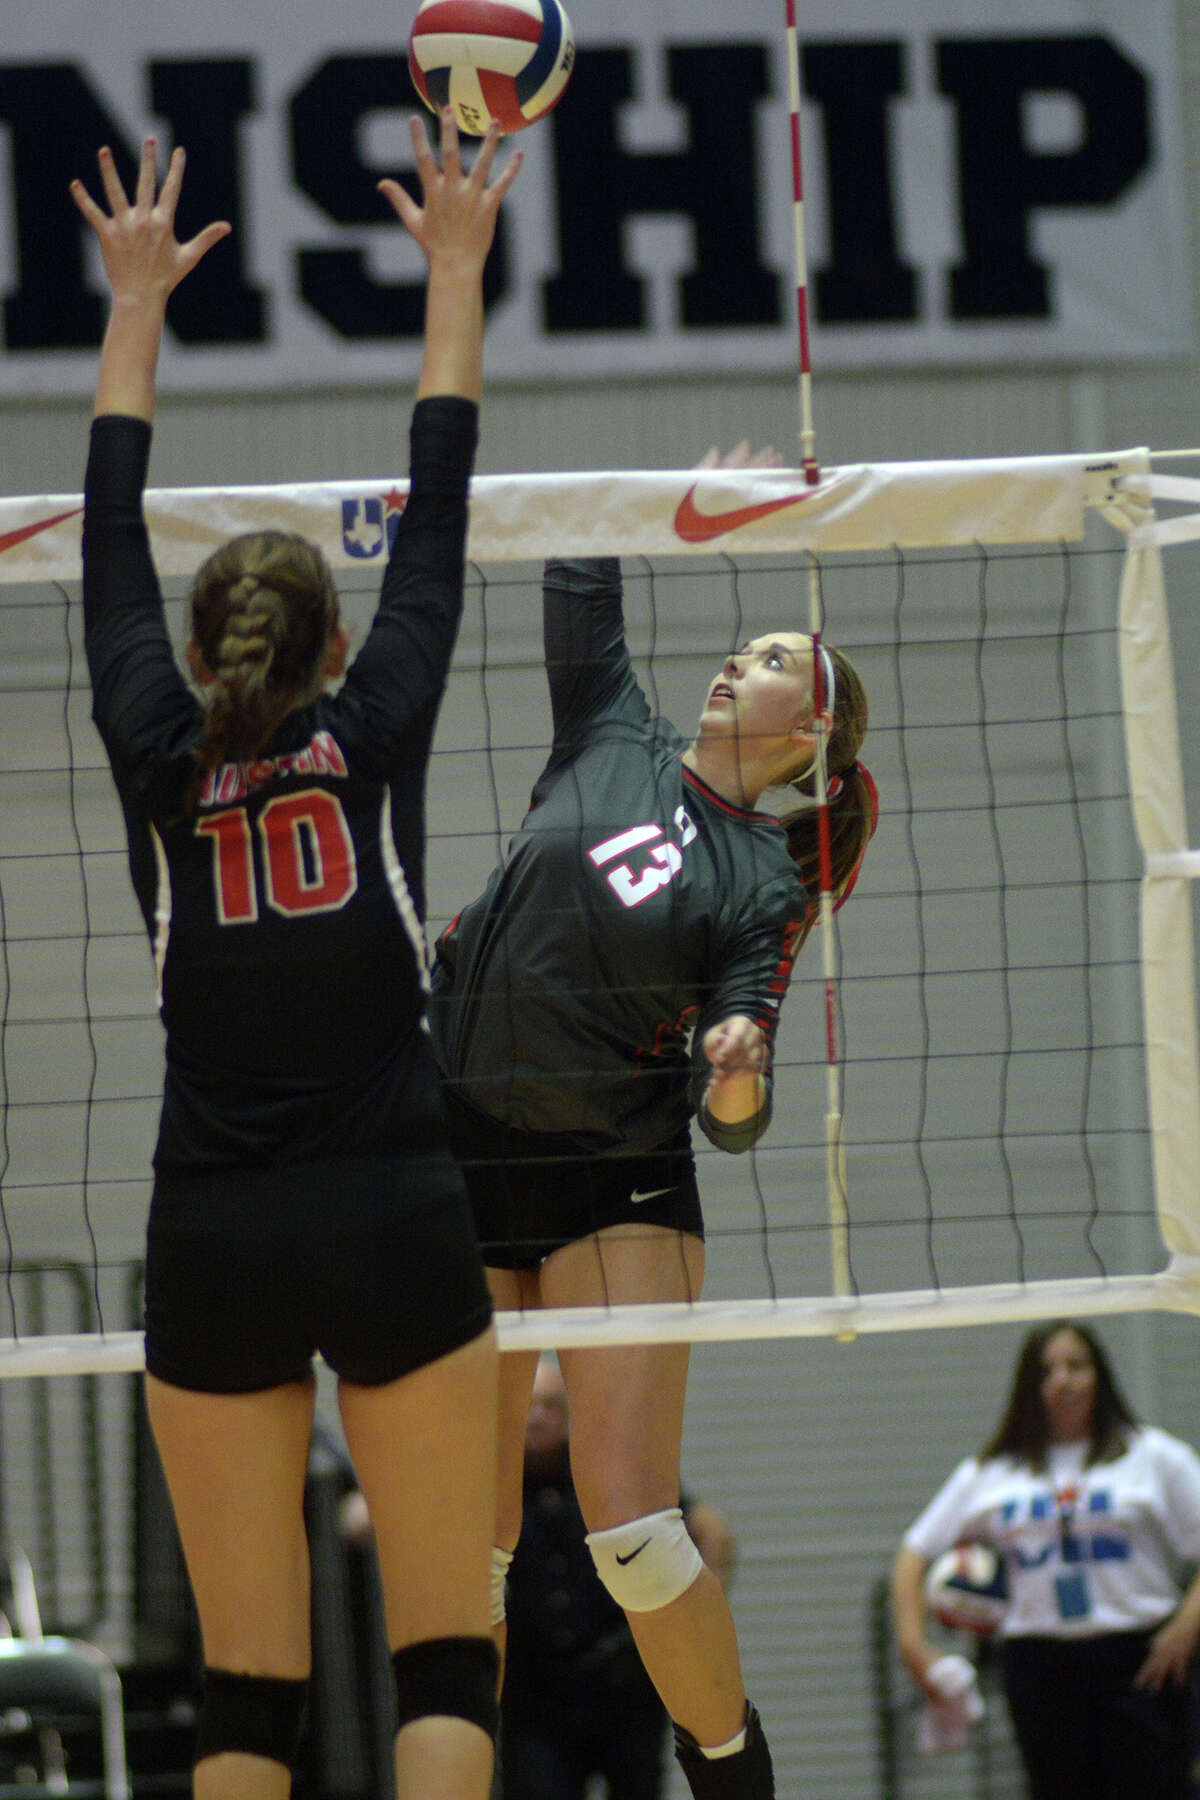 Oak Ridge junior Brooke Clark (13) goes one-on-one at the net against Fort Bend Austin senior Erin Mulcahey (10) during their Class 6A semifinal matchup at the 2015 UIL Volleyball State Championships at the Curtis Culwell Center in Garland on Friday, Nov. 20, 2015. (Photo by Jerry Baker/Freelance)